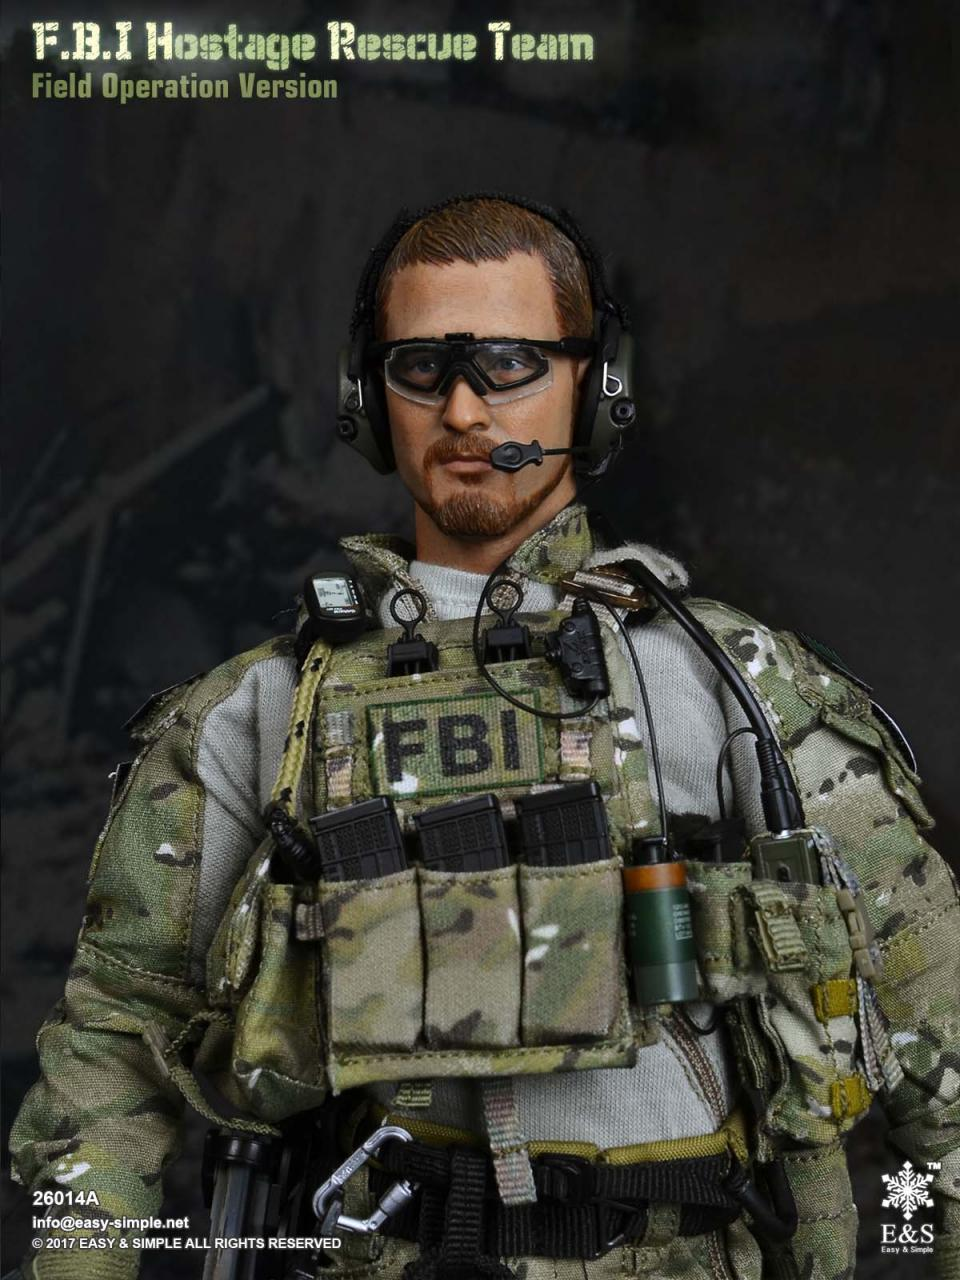 Easy&Simple 26014 FBI Hostage Rescue Team (2 Versions)-26014a-19-jpg